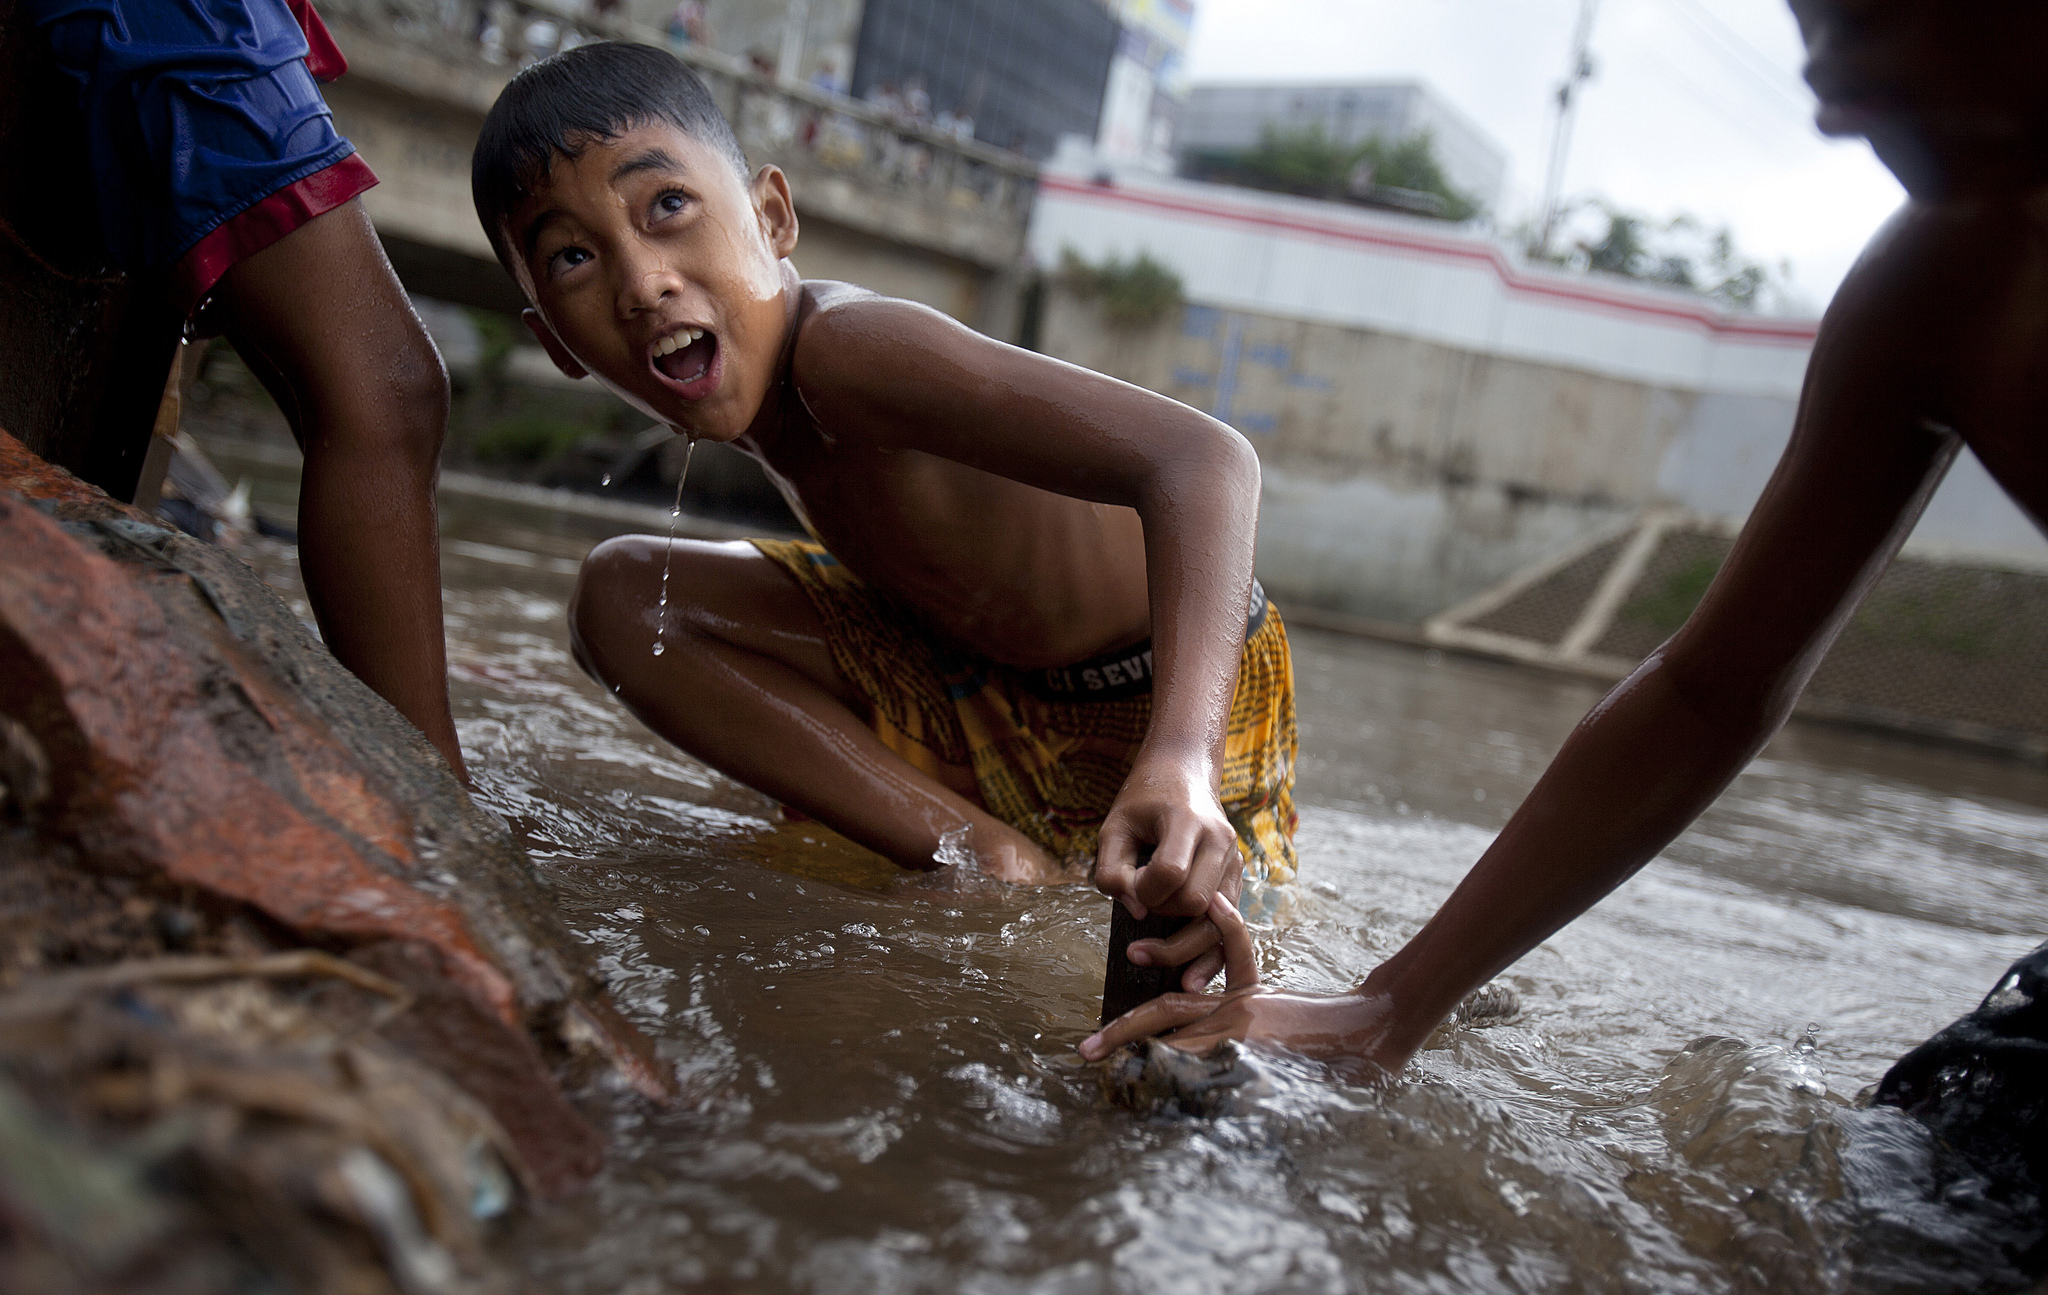 A boy swims in Jakarta's Ciliwung River.